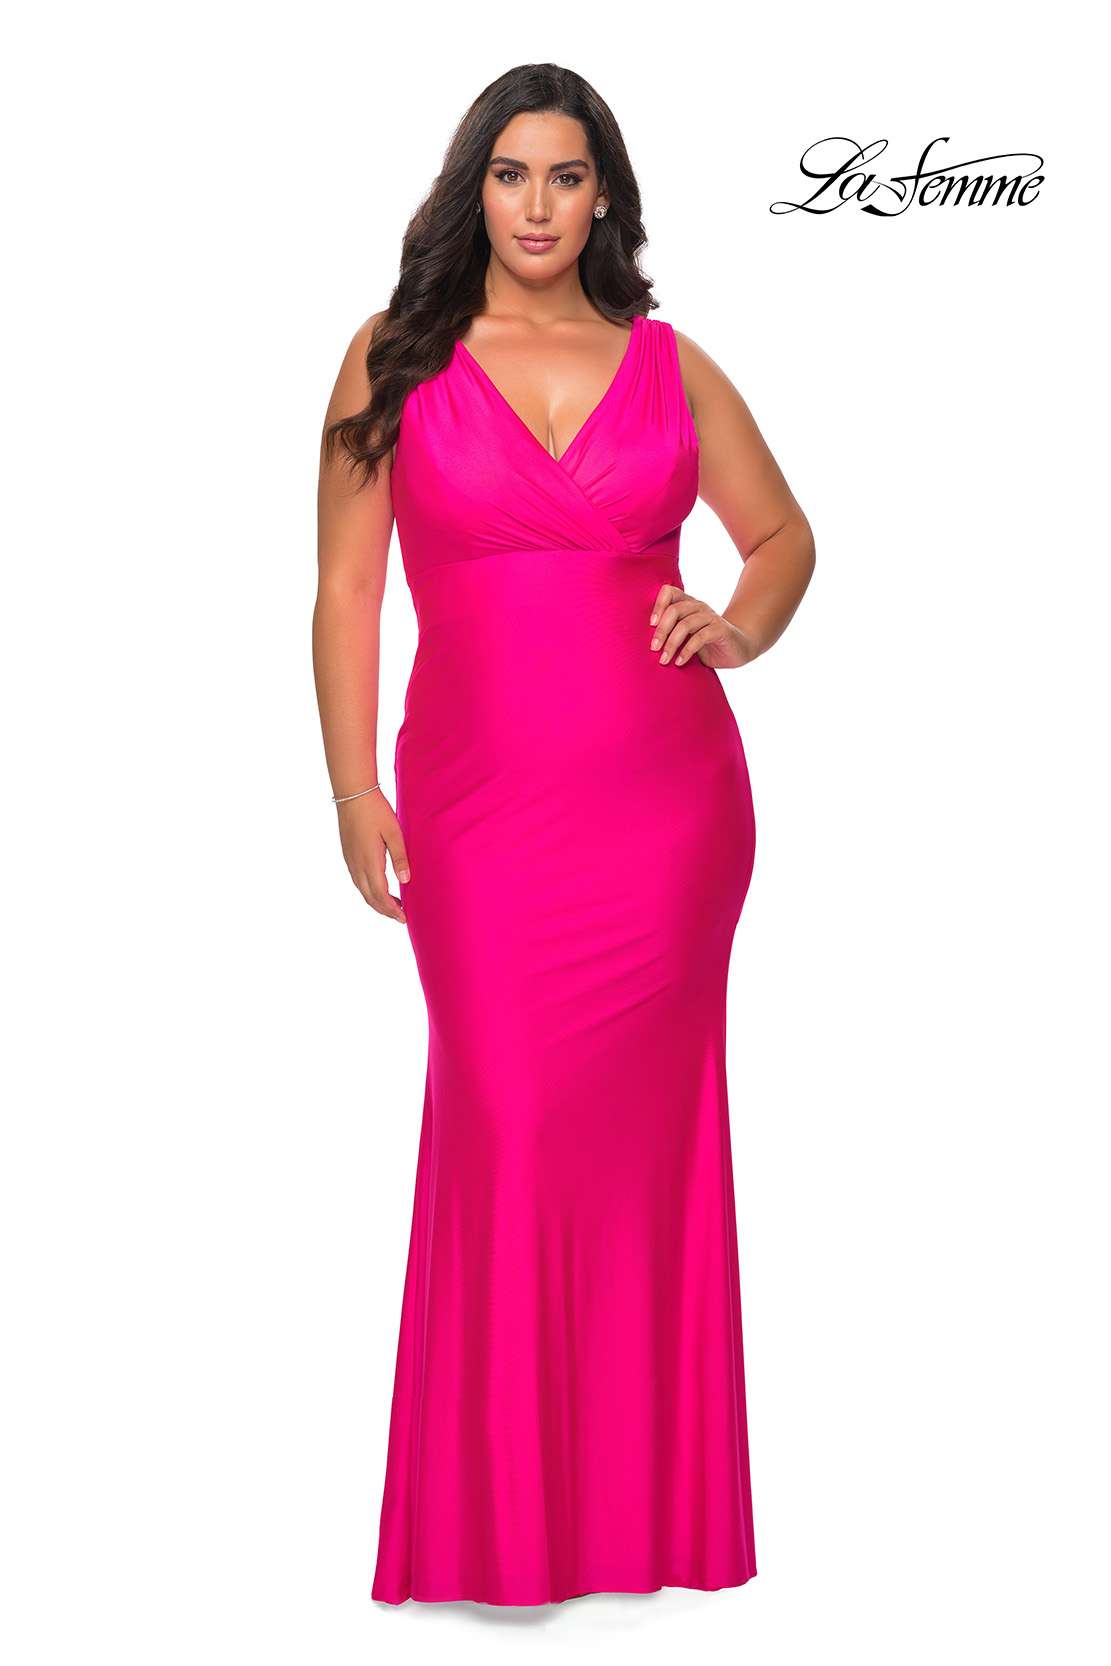 Neon Pink Fitted Plus Size Dress